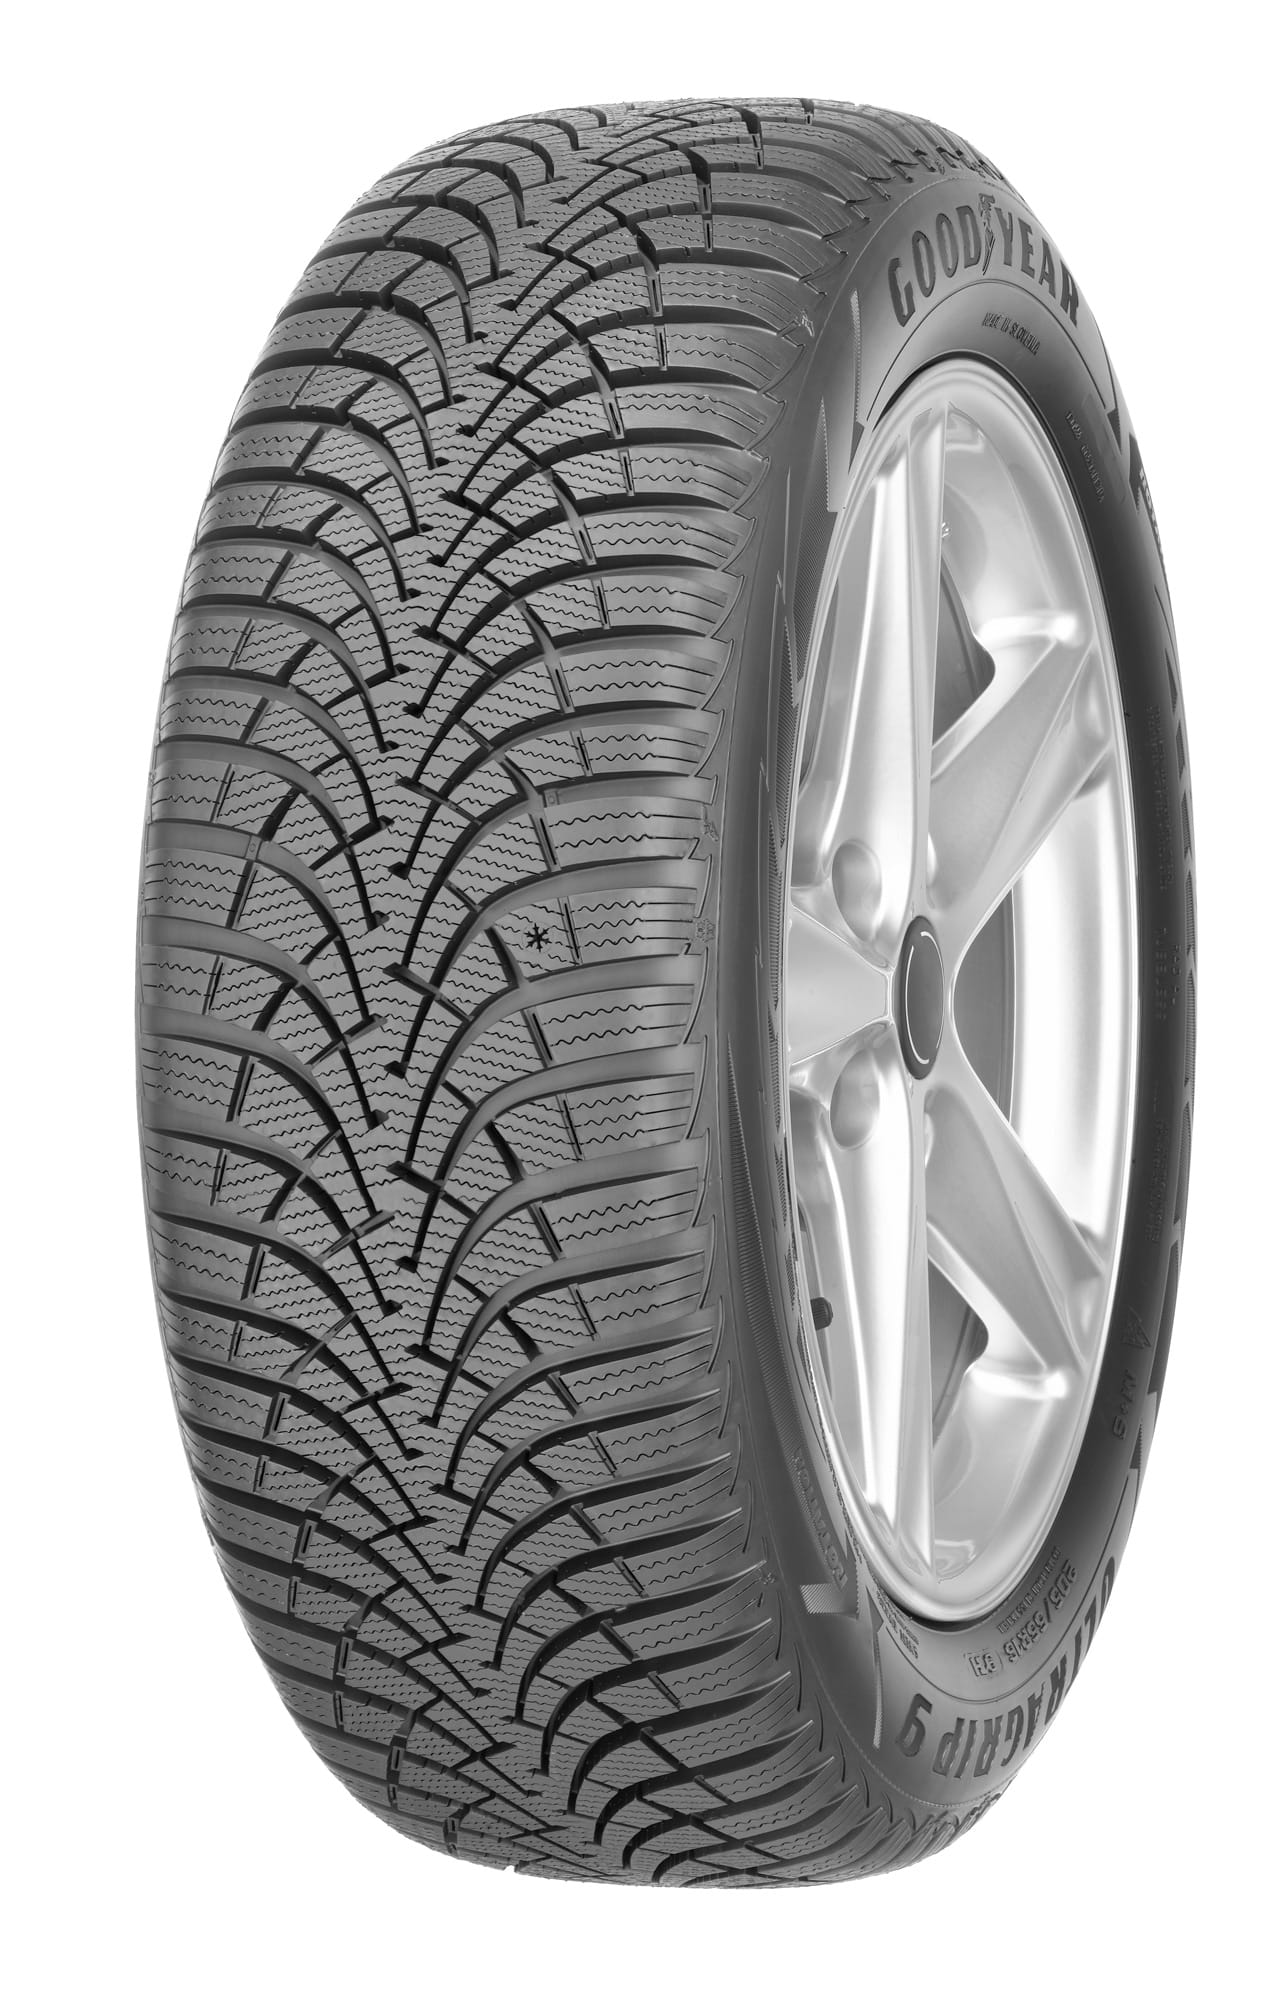 Gomme Nuove Goodyear 195/55 R16 87T ULTRAGRIP 9+ M+S pneumatici nuovi Invernale